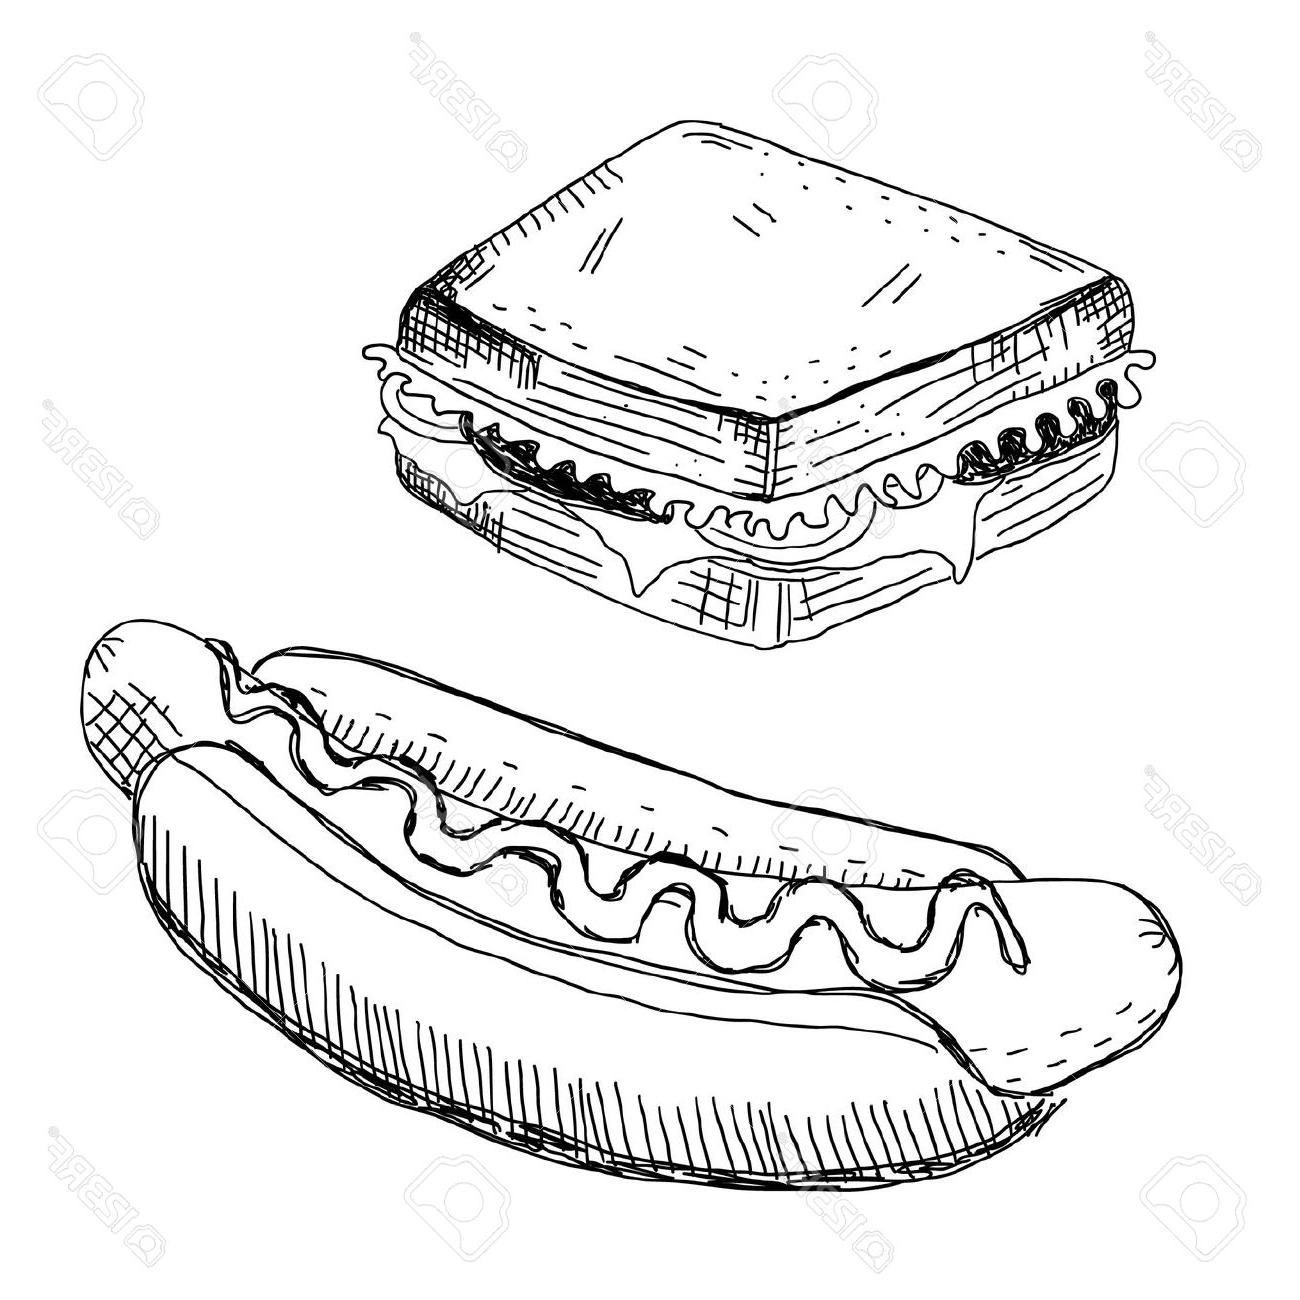 Sandwich Drawing At Getdrawings